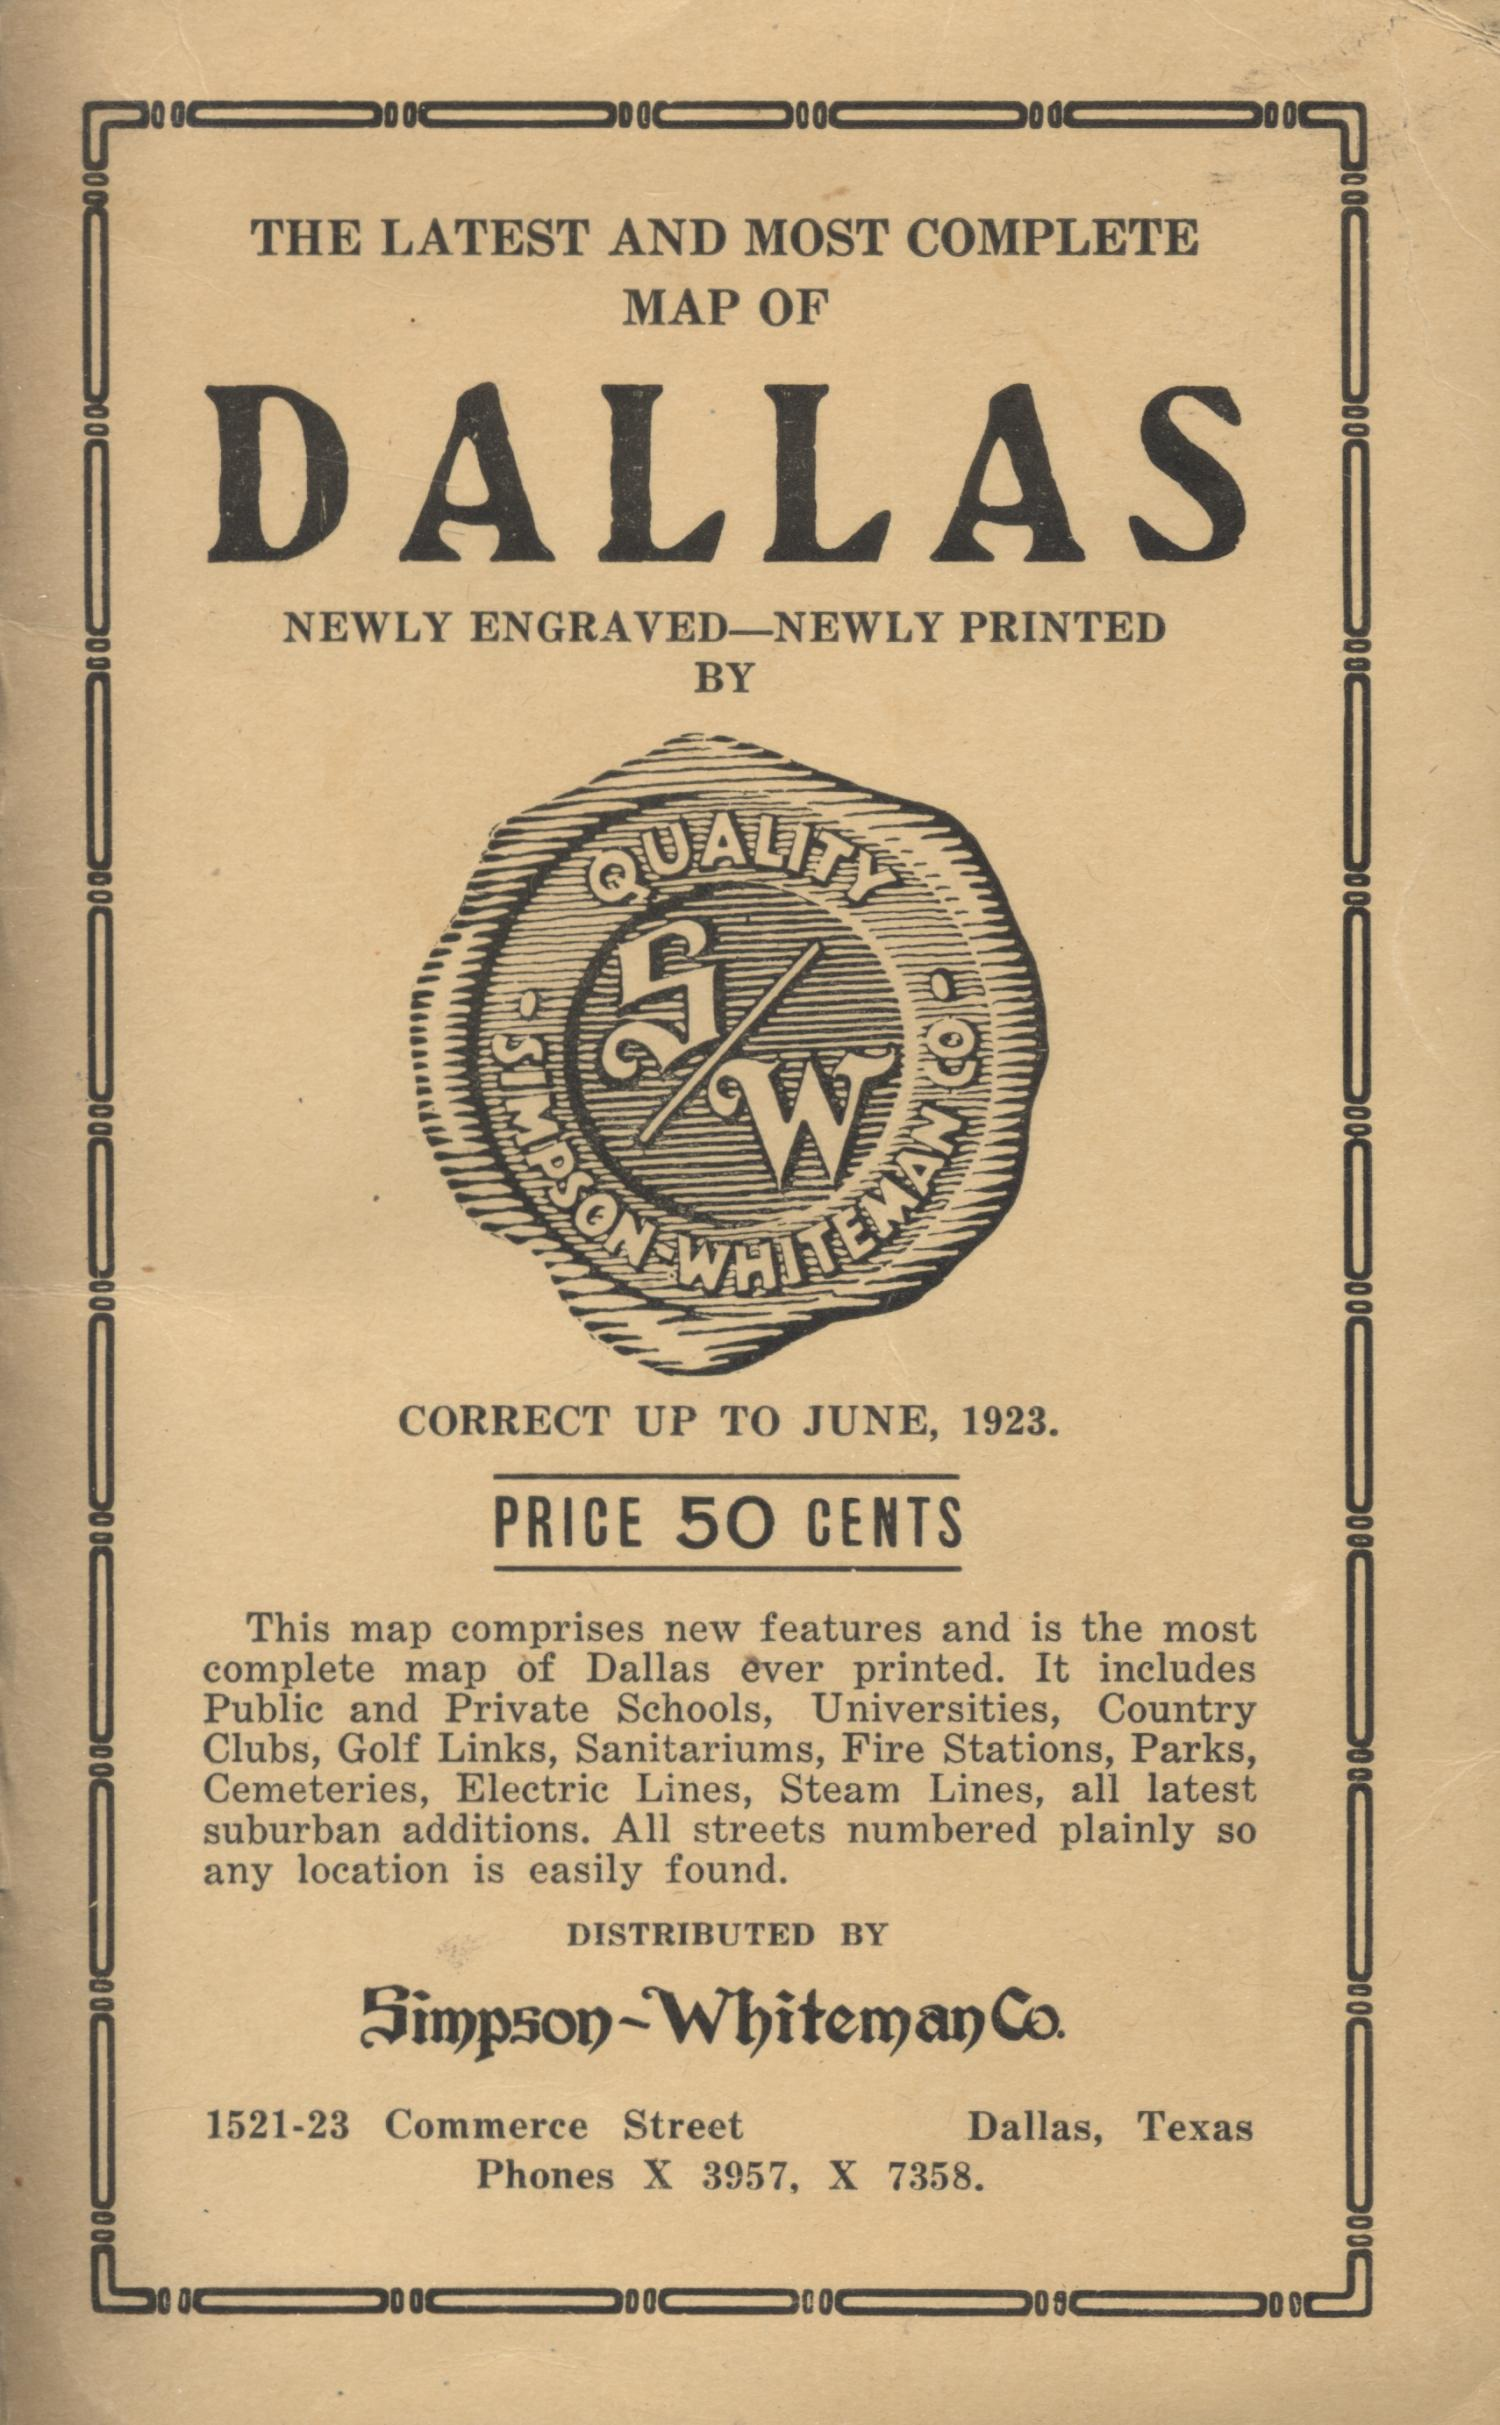 Simpson-Whiteman Co. map of Dallas, Texas, 1923 [Accompanying Text]., Explanation and supporting information related to map that shows early twentieth century Dallas, Texas railroads, street names, select buildings, parks, street railroads, street numbers by block, and the course of the Trinity River.,